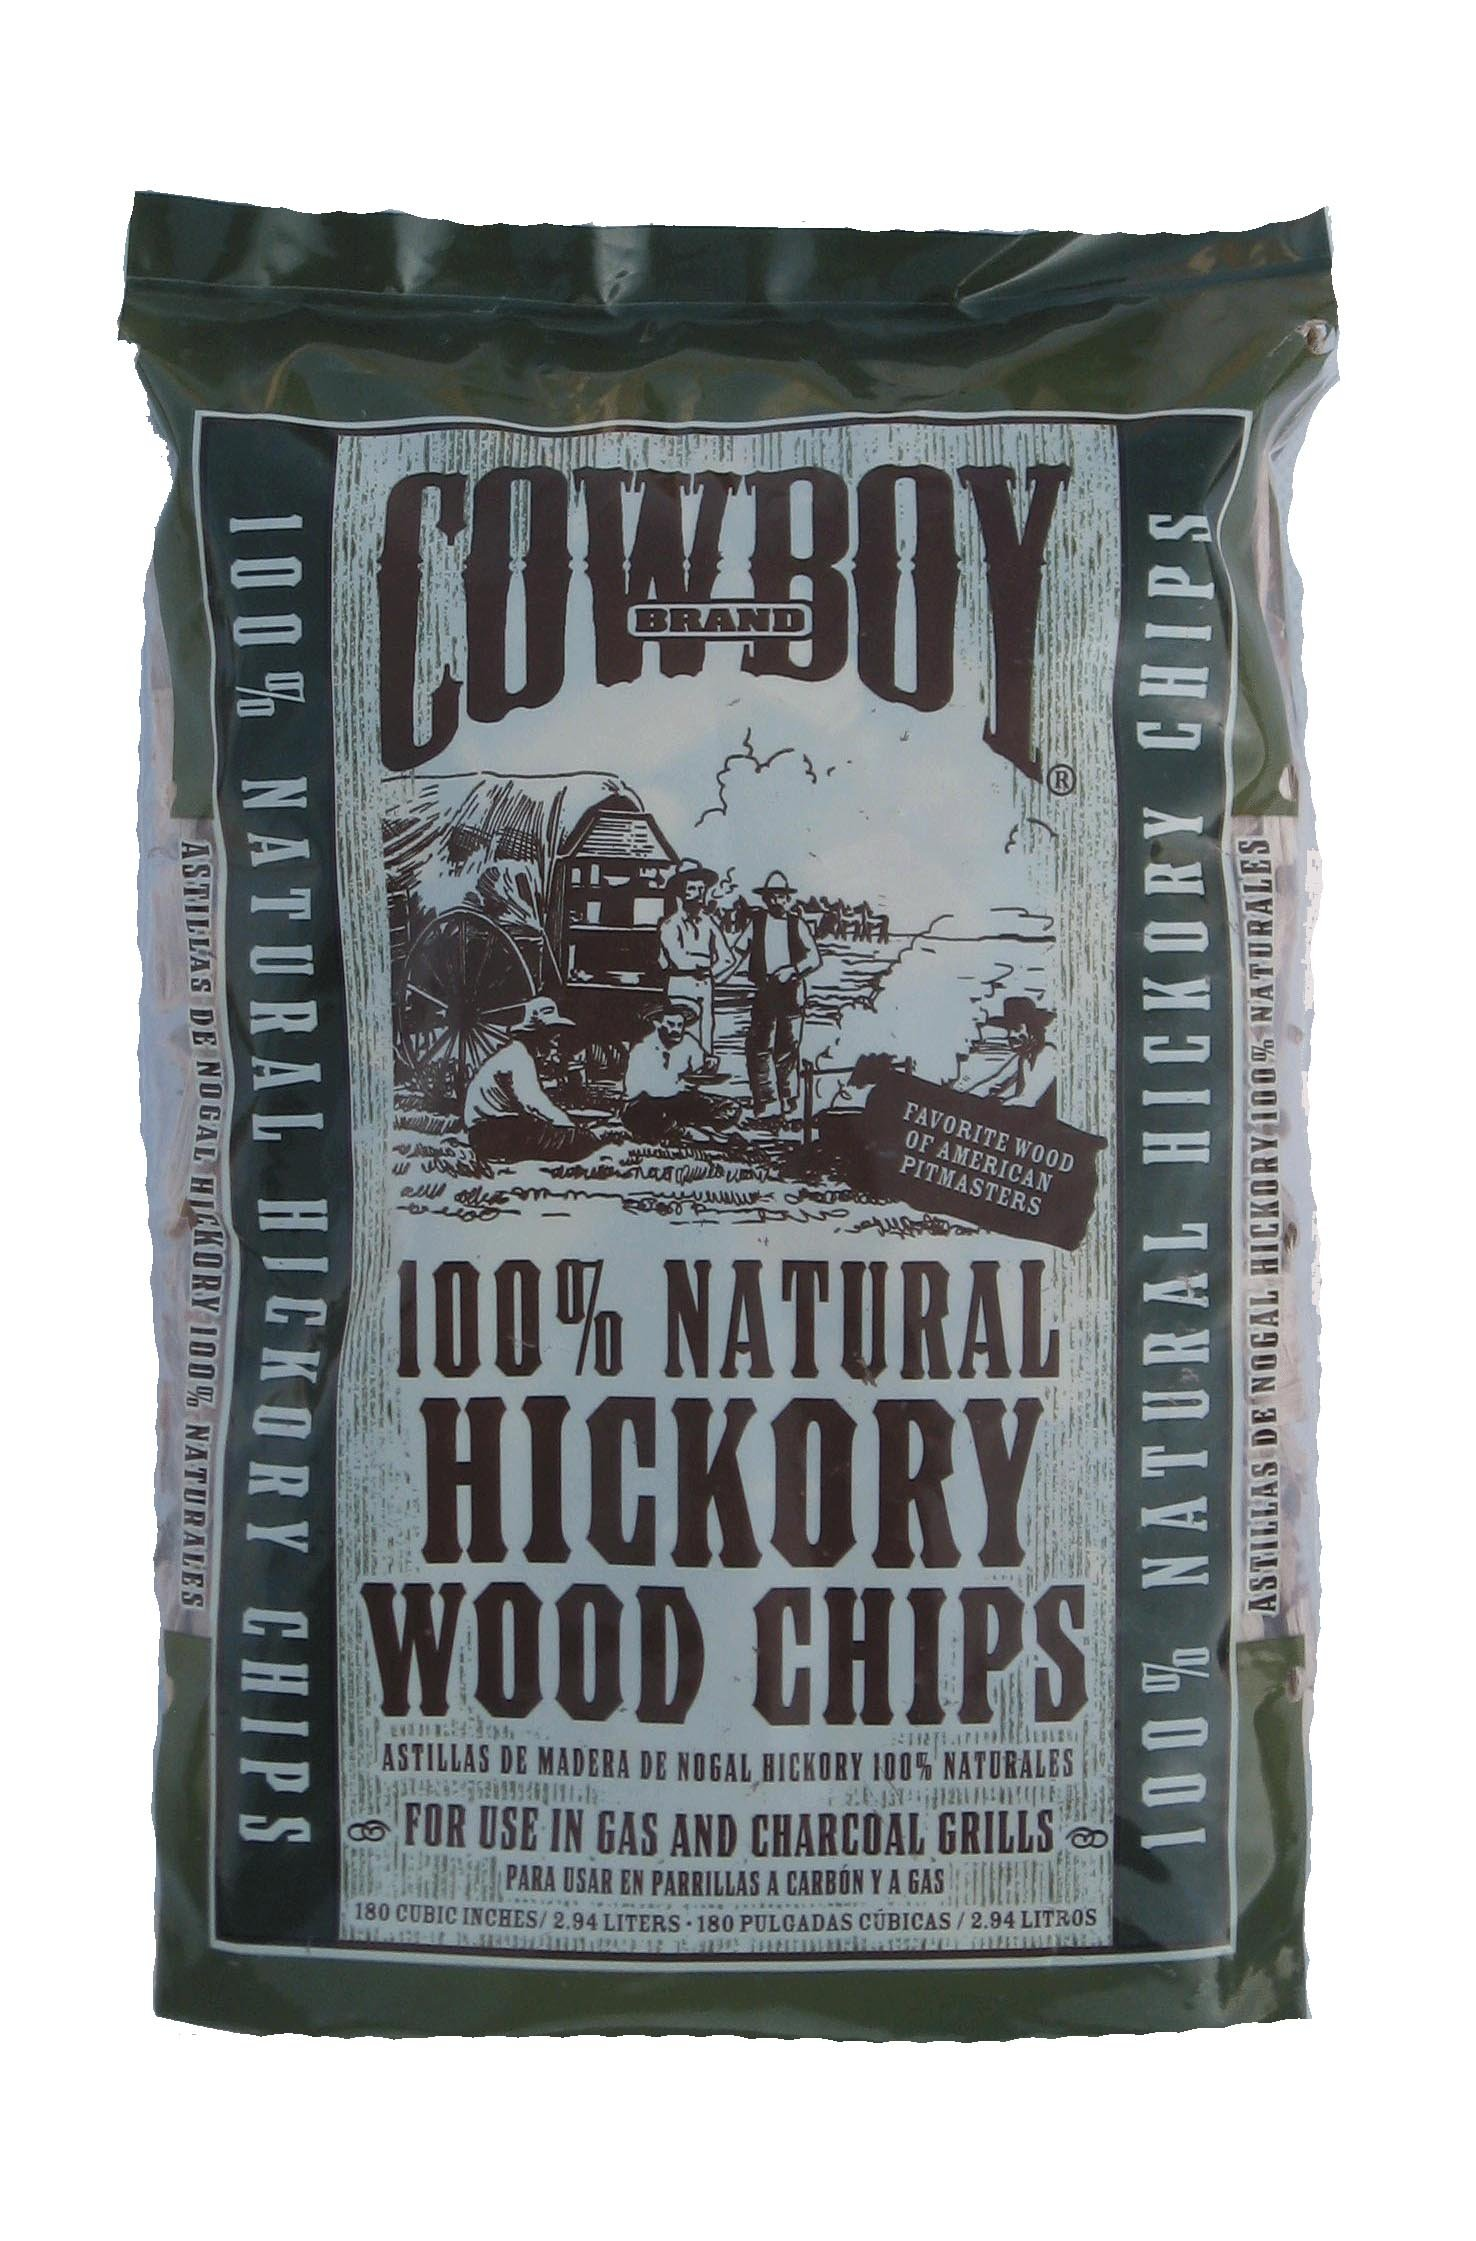 Cowboy 180 Cubic Inch Hickory Wood Chips